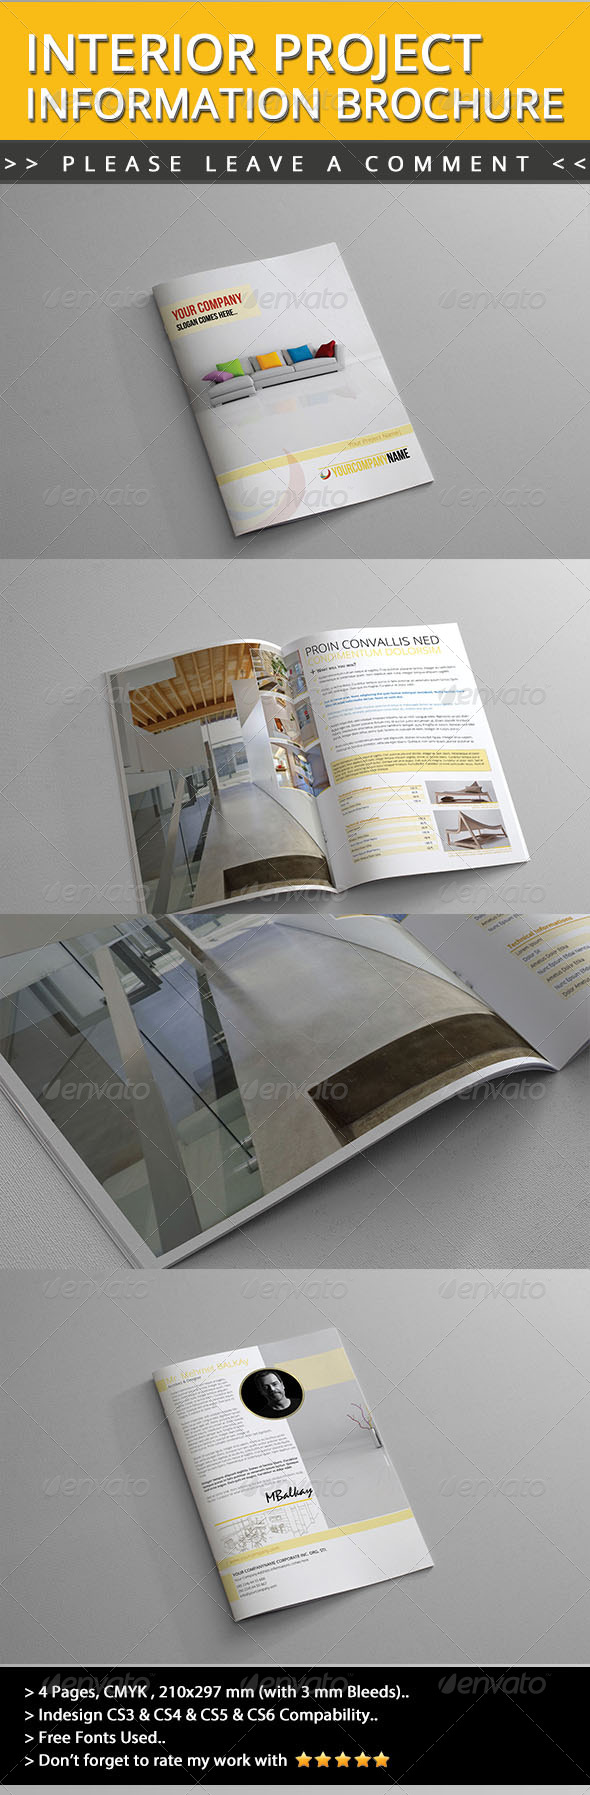 Interior Project Information Brochure - Informational Brochures